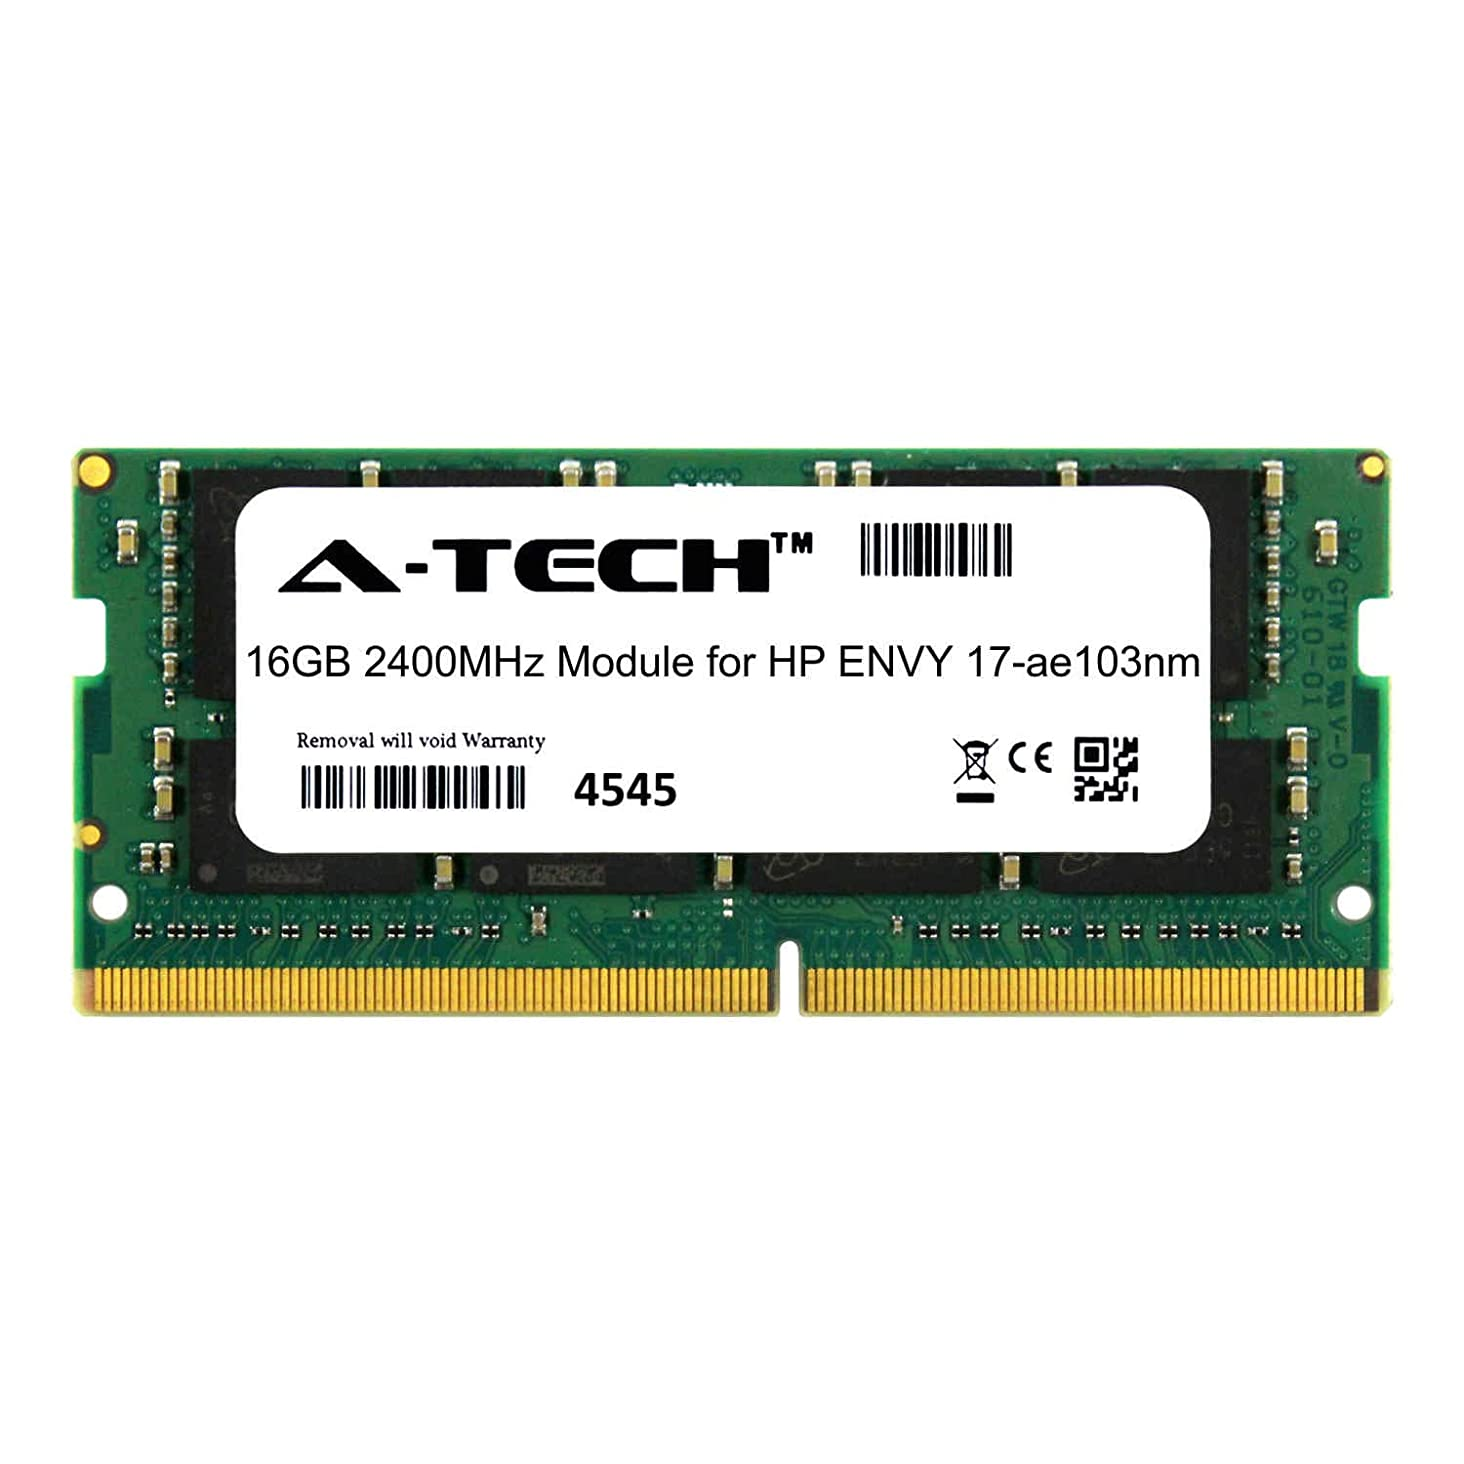 A-Tech 16GB Module for HP Envy 17-ae103nm Laptop & Notebook Compatible DDR4 2400Mhz Memory Ram (ATMS273931A25831X1)